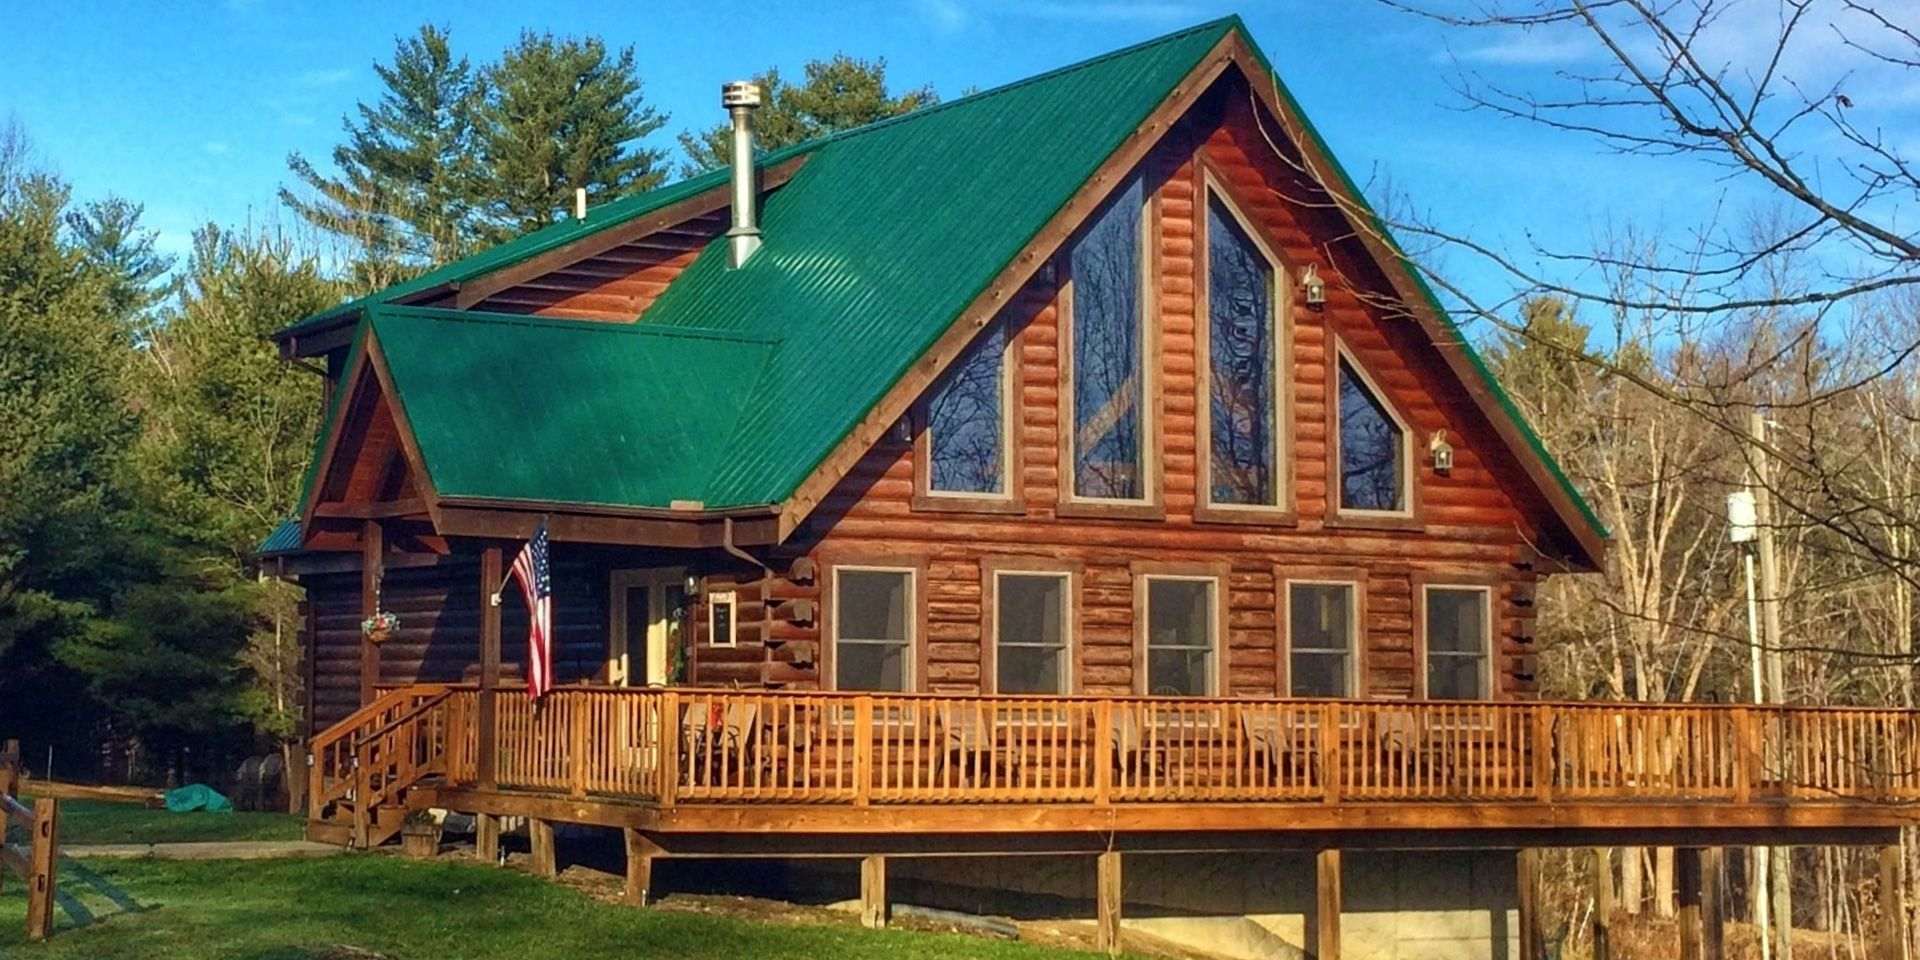 The Cabins at Hickory Ridge